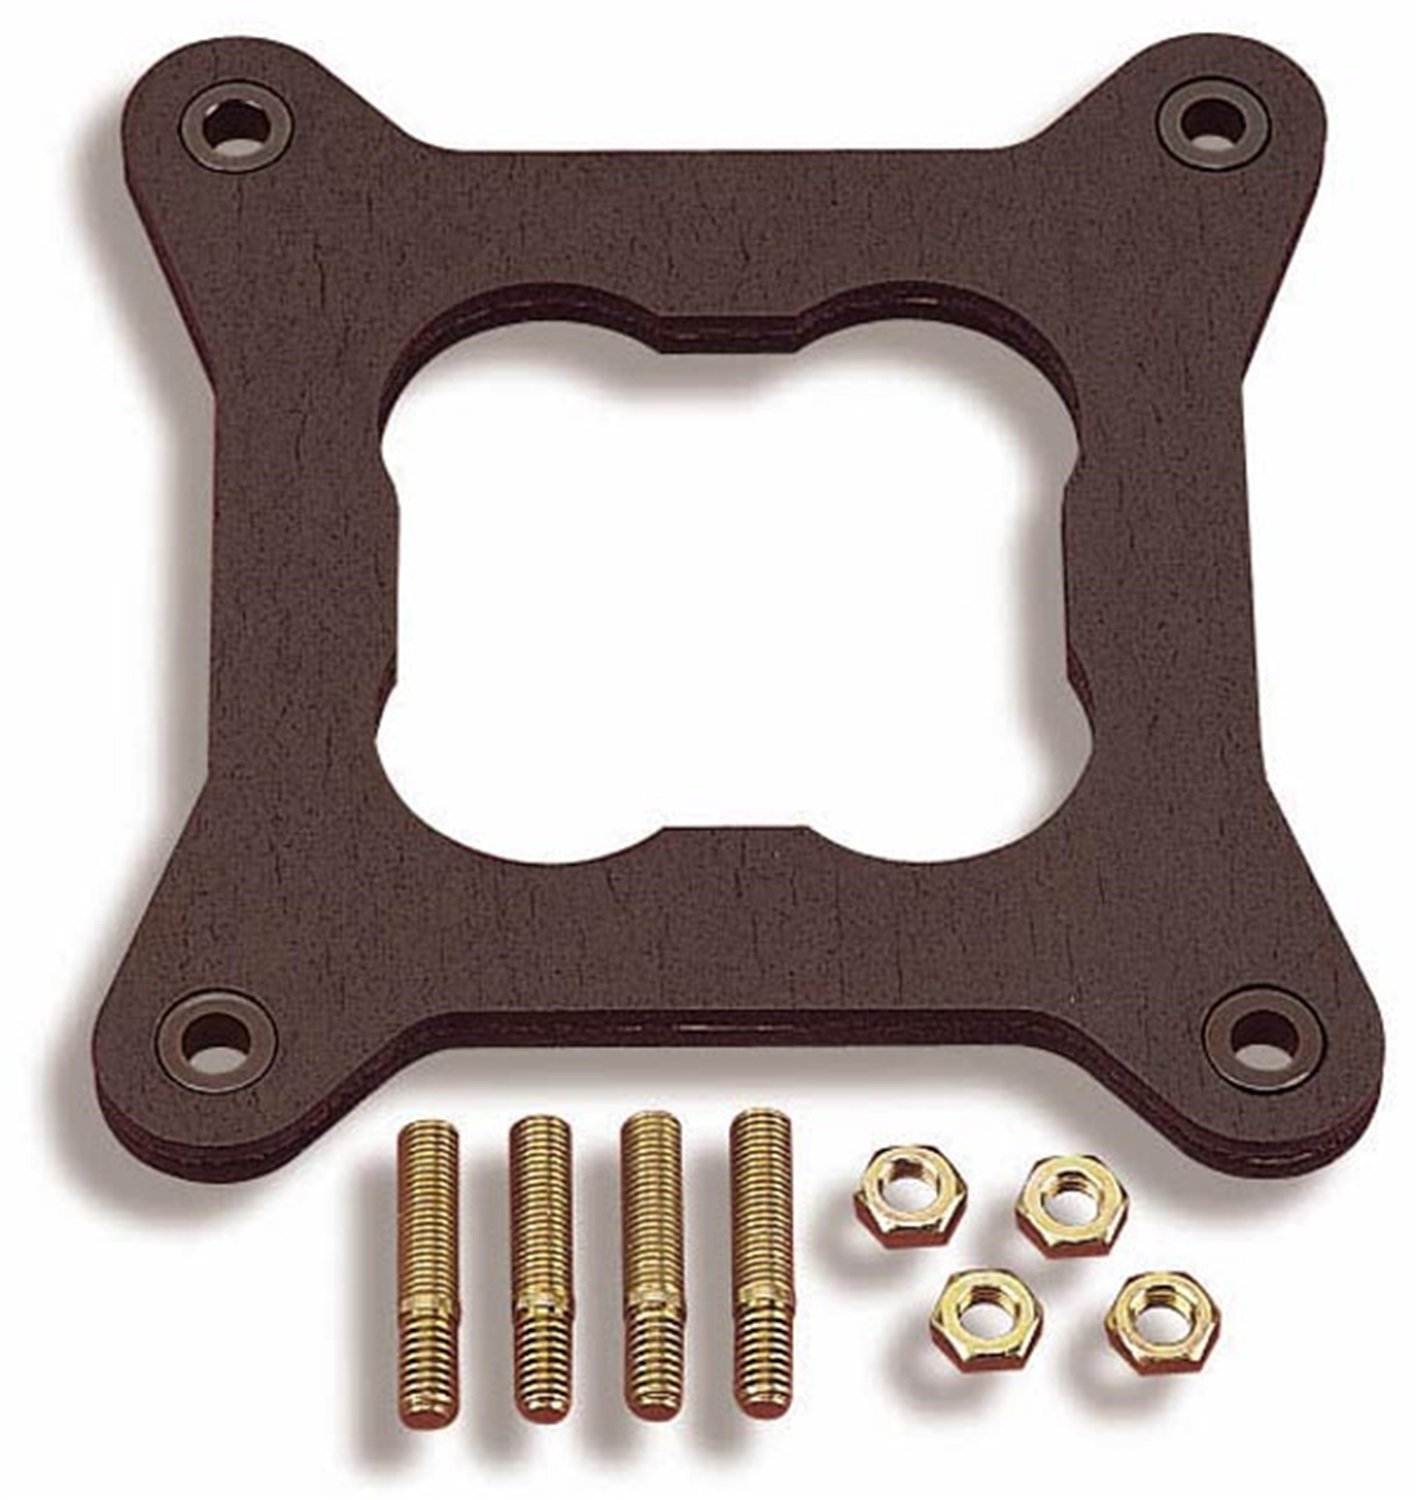 Holley 108-12 Carburetor Base Gasket